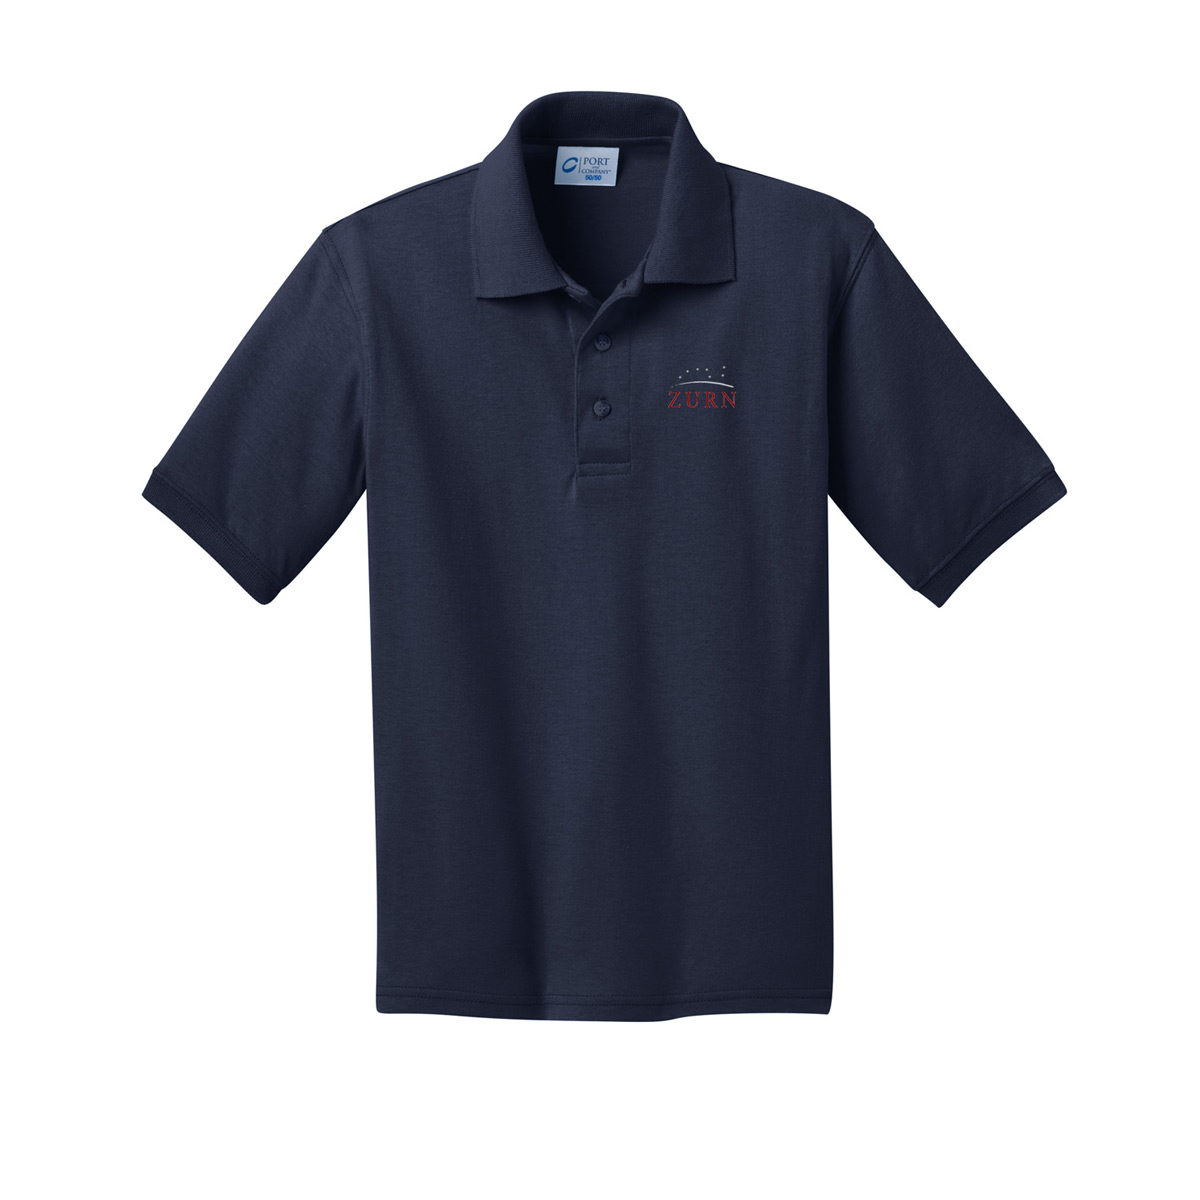 Zurn Yachts - Youth Cotton Polo